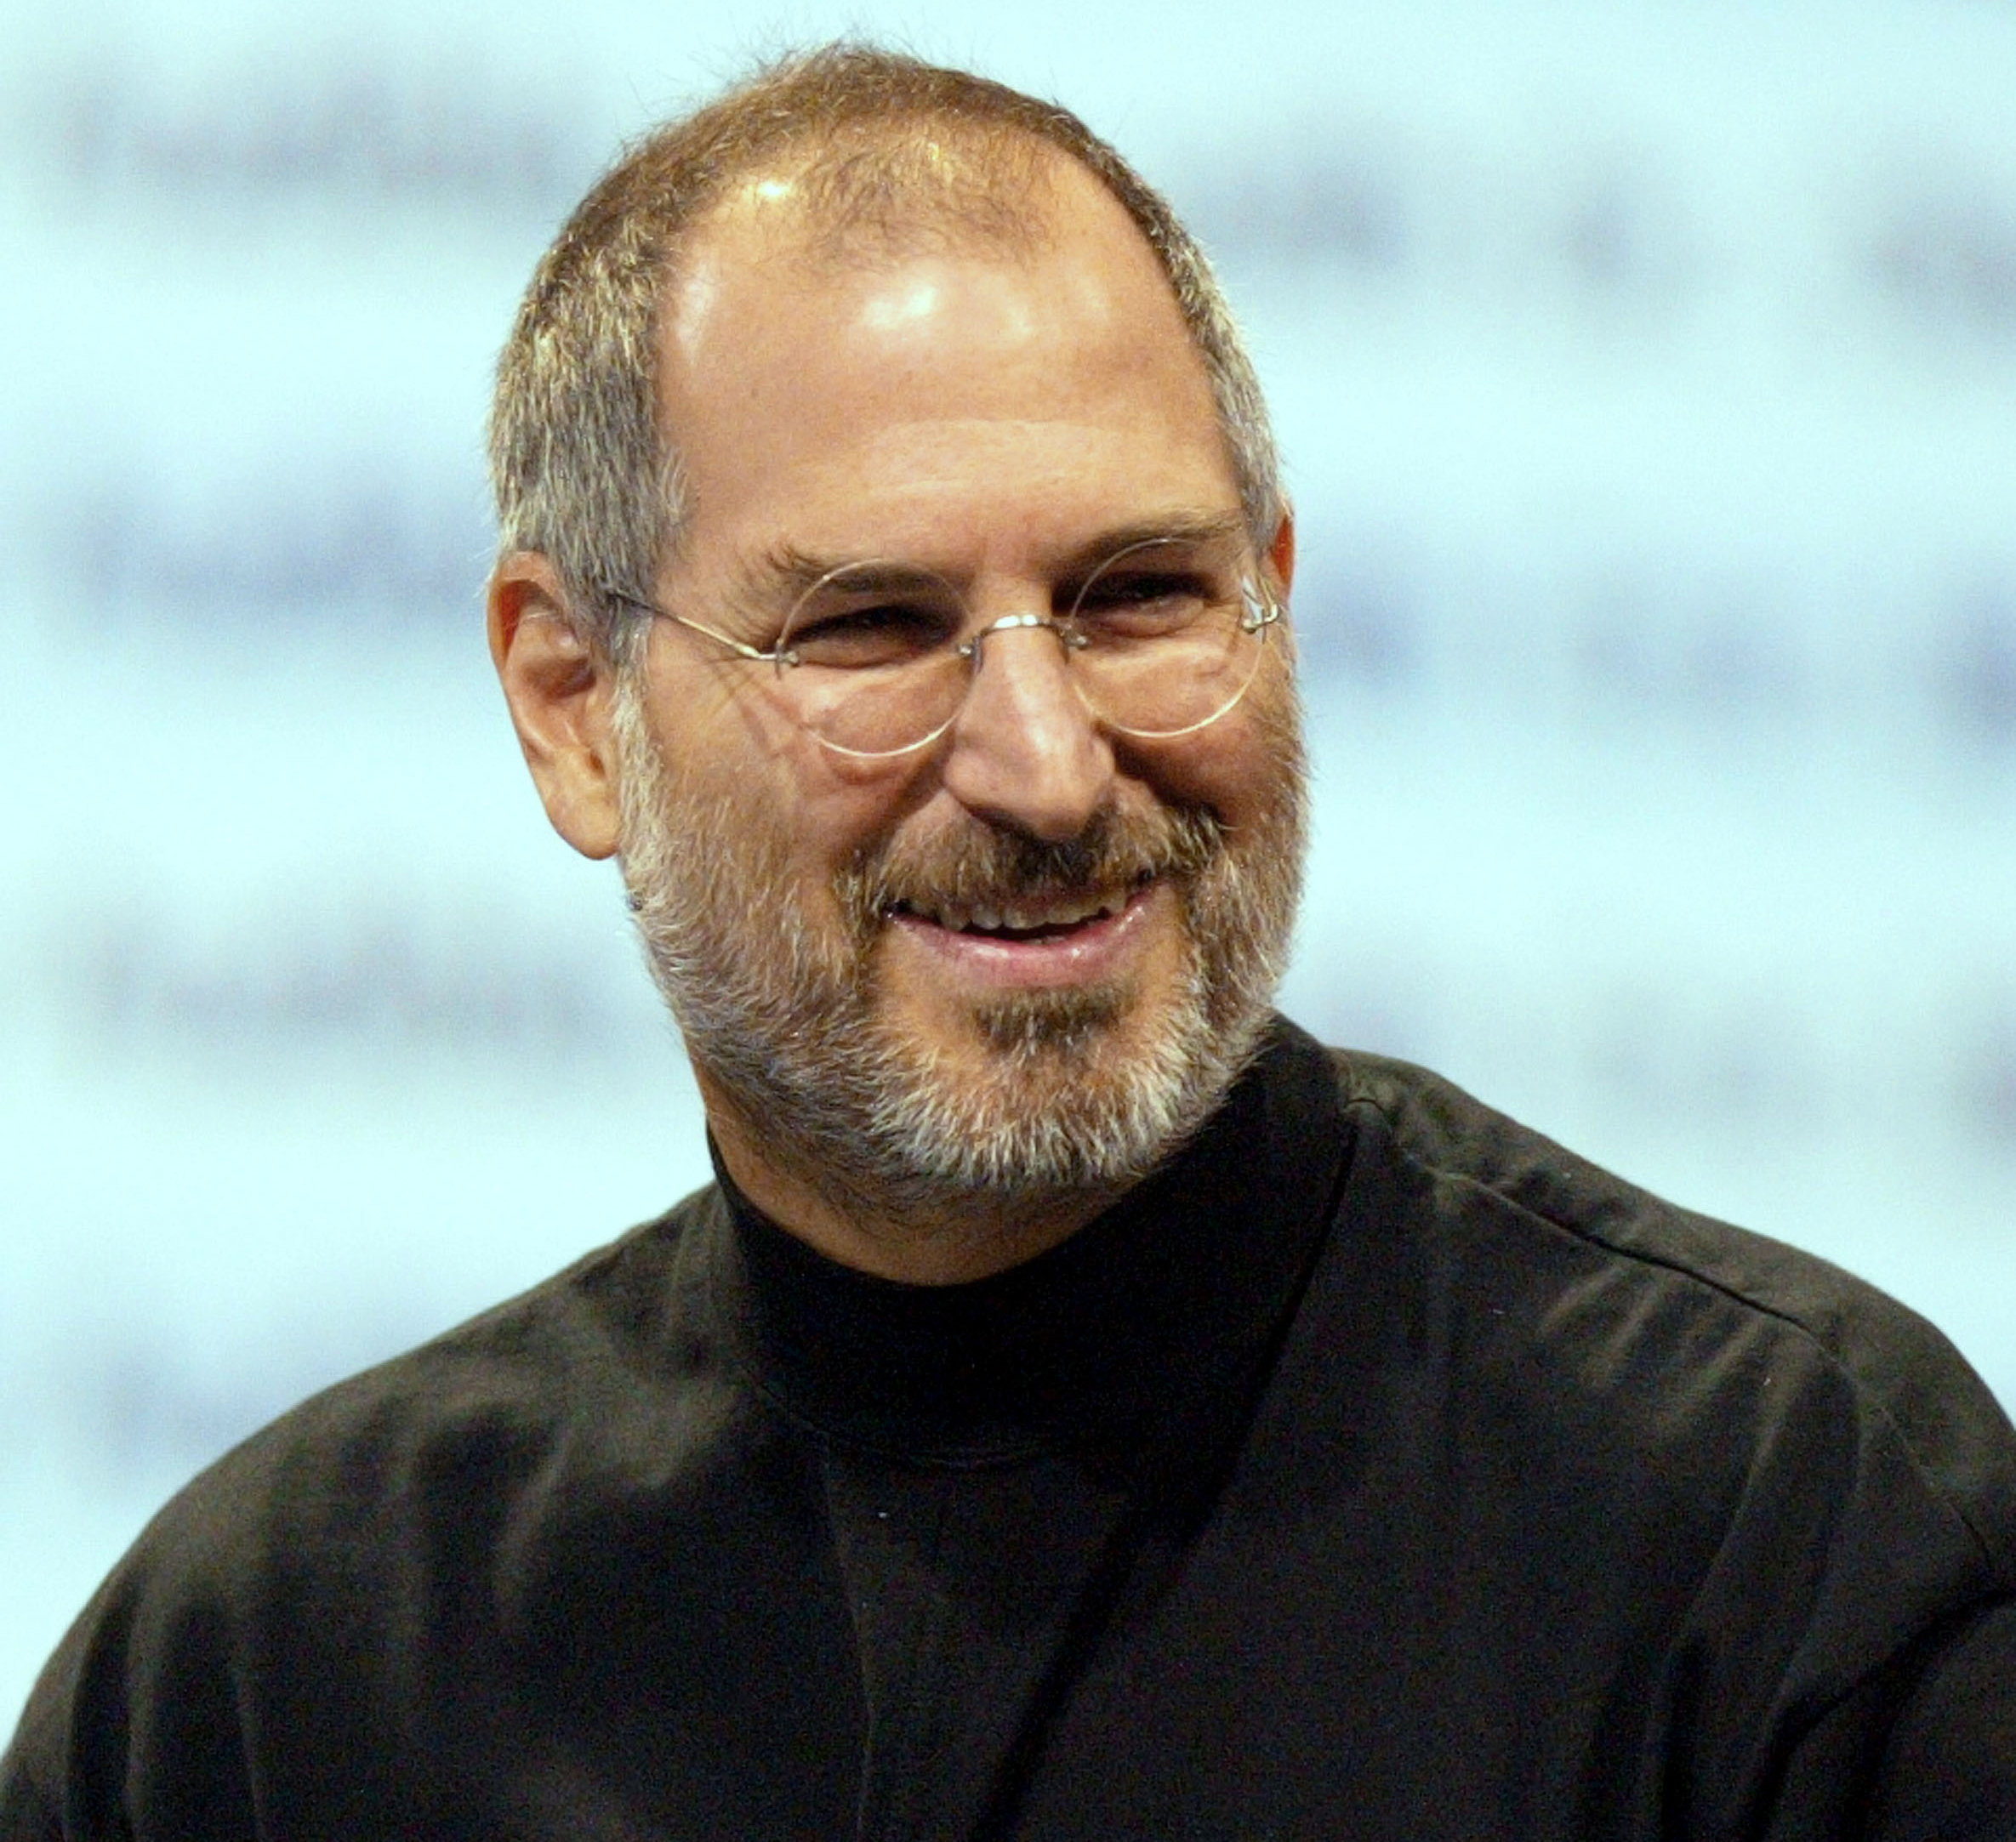 Steve Jobs Quot Think Different Quot Philosophy Included Approach